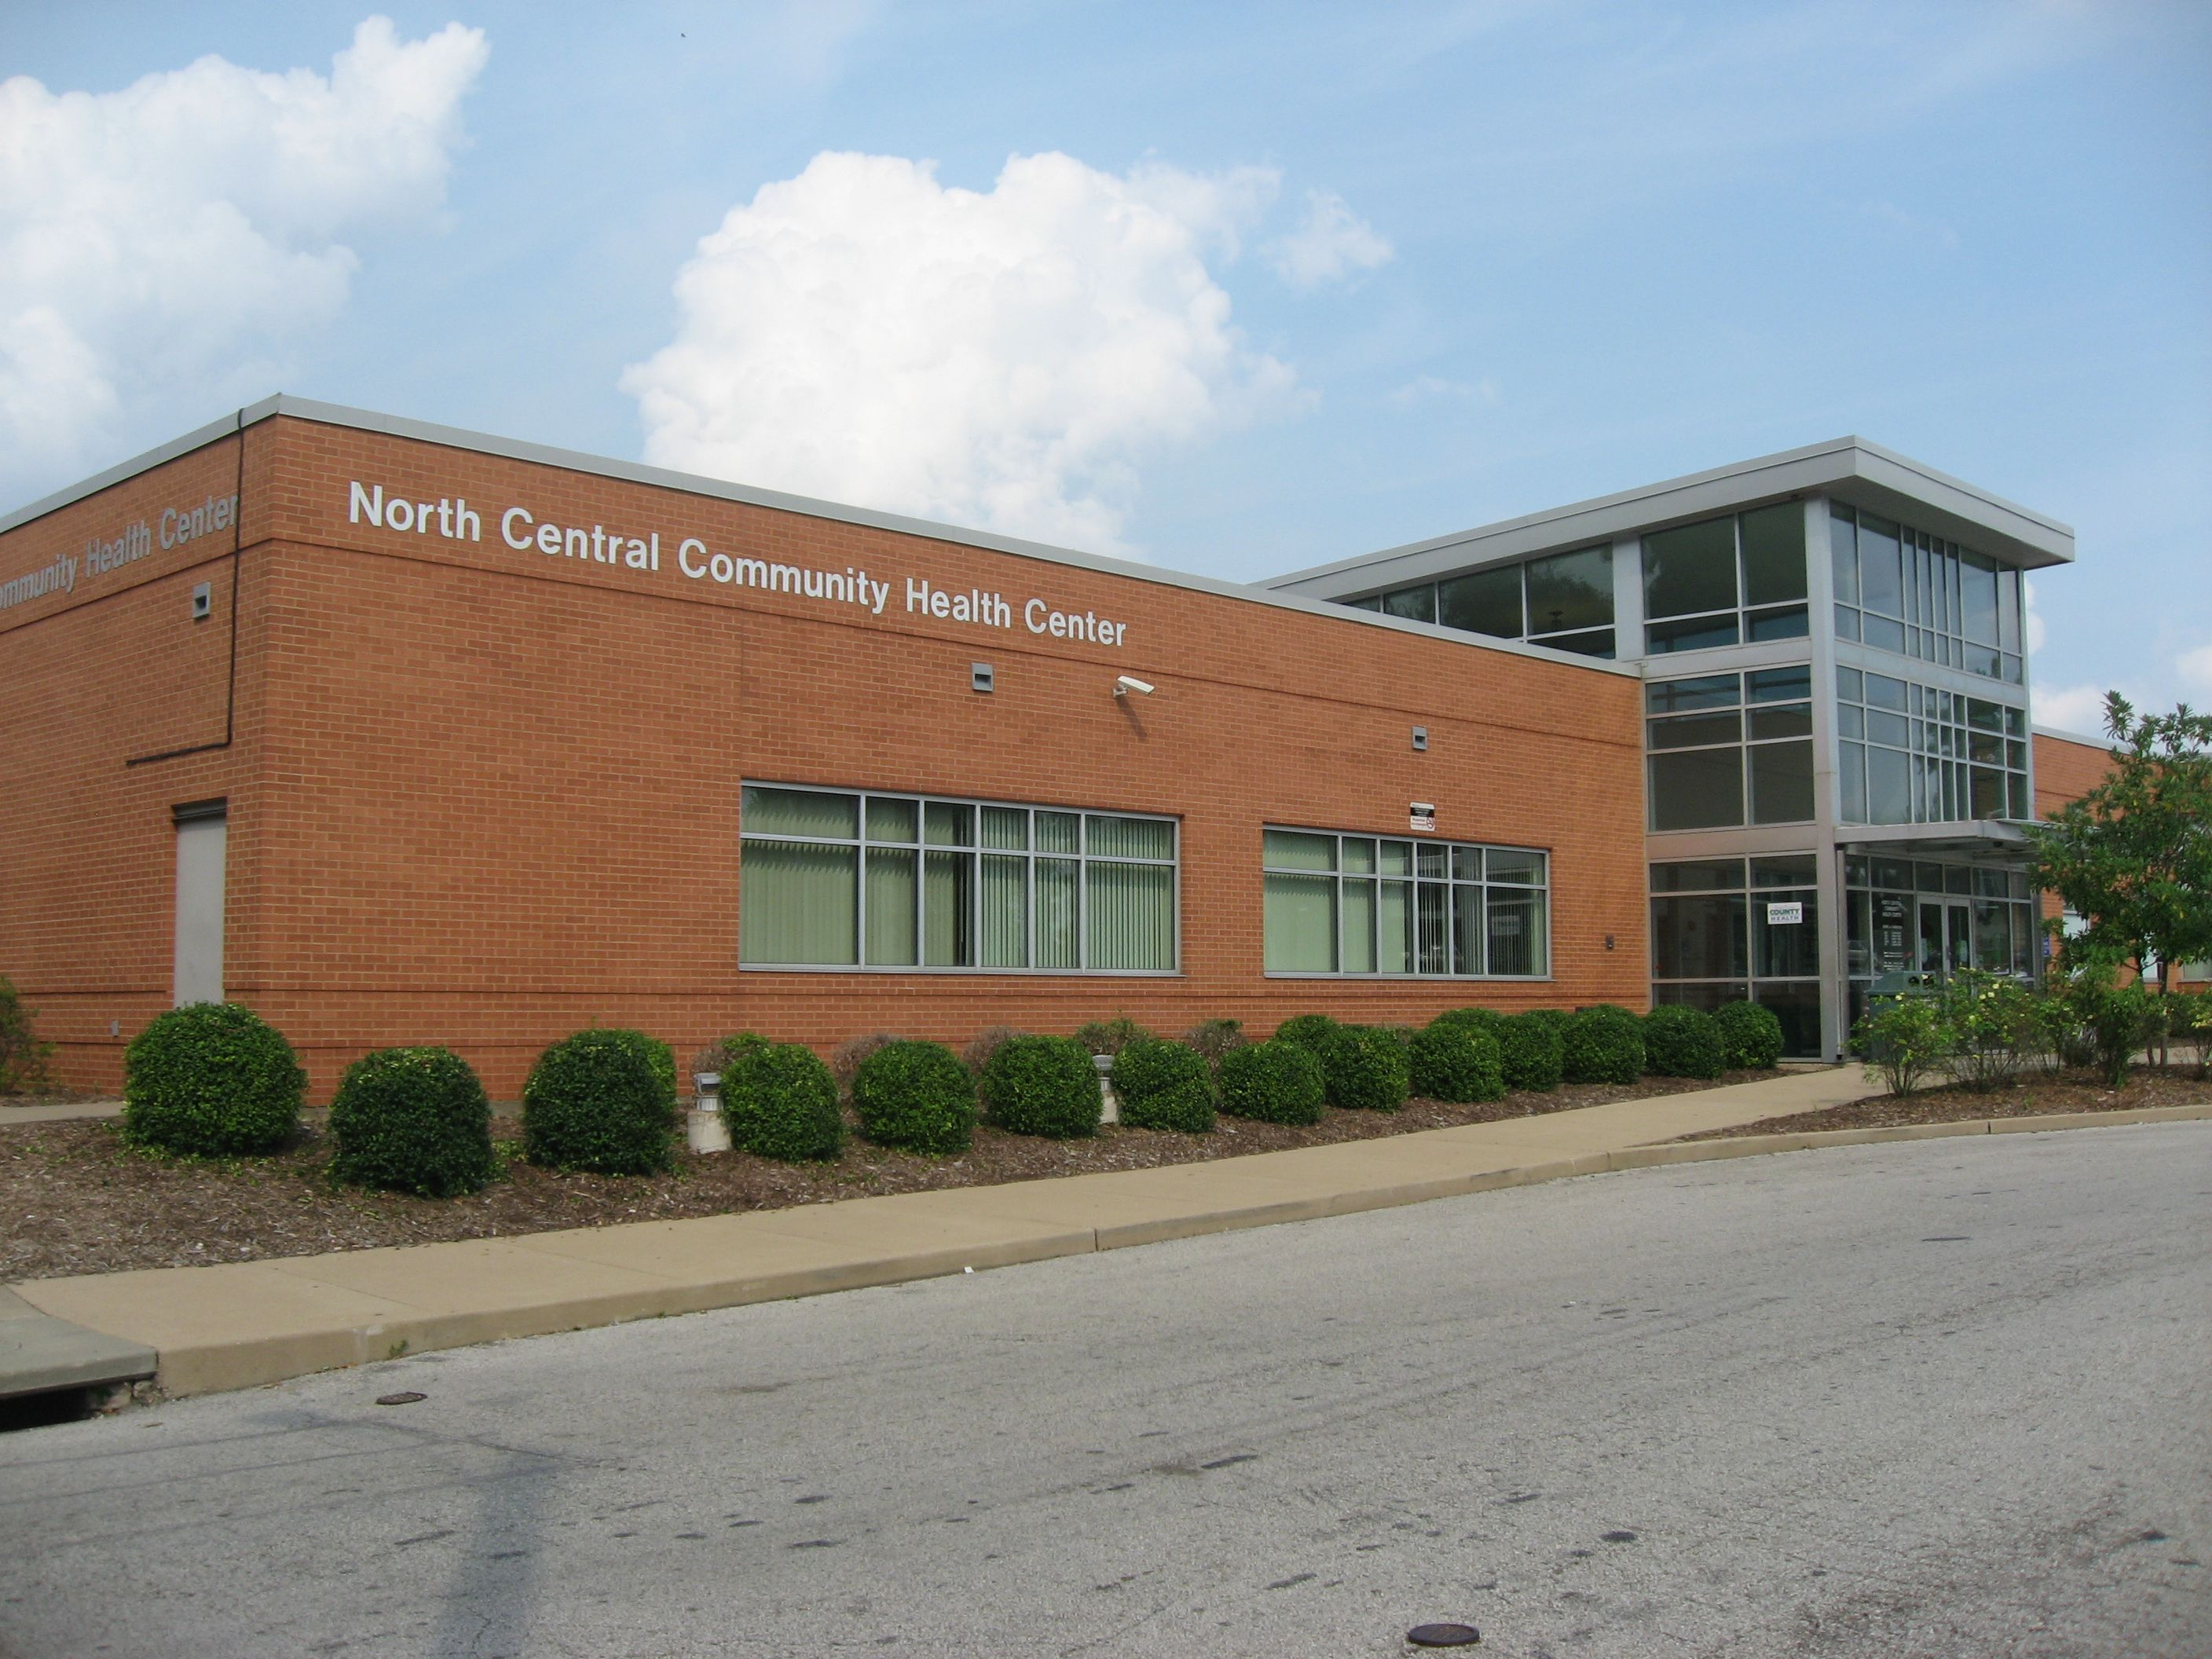 North Central Community Health Center (Pine Lawn)